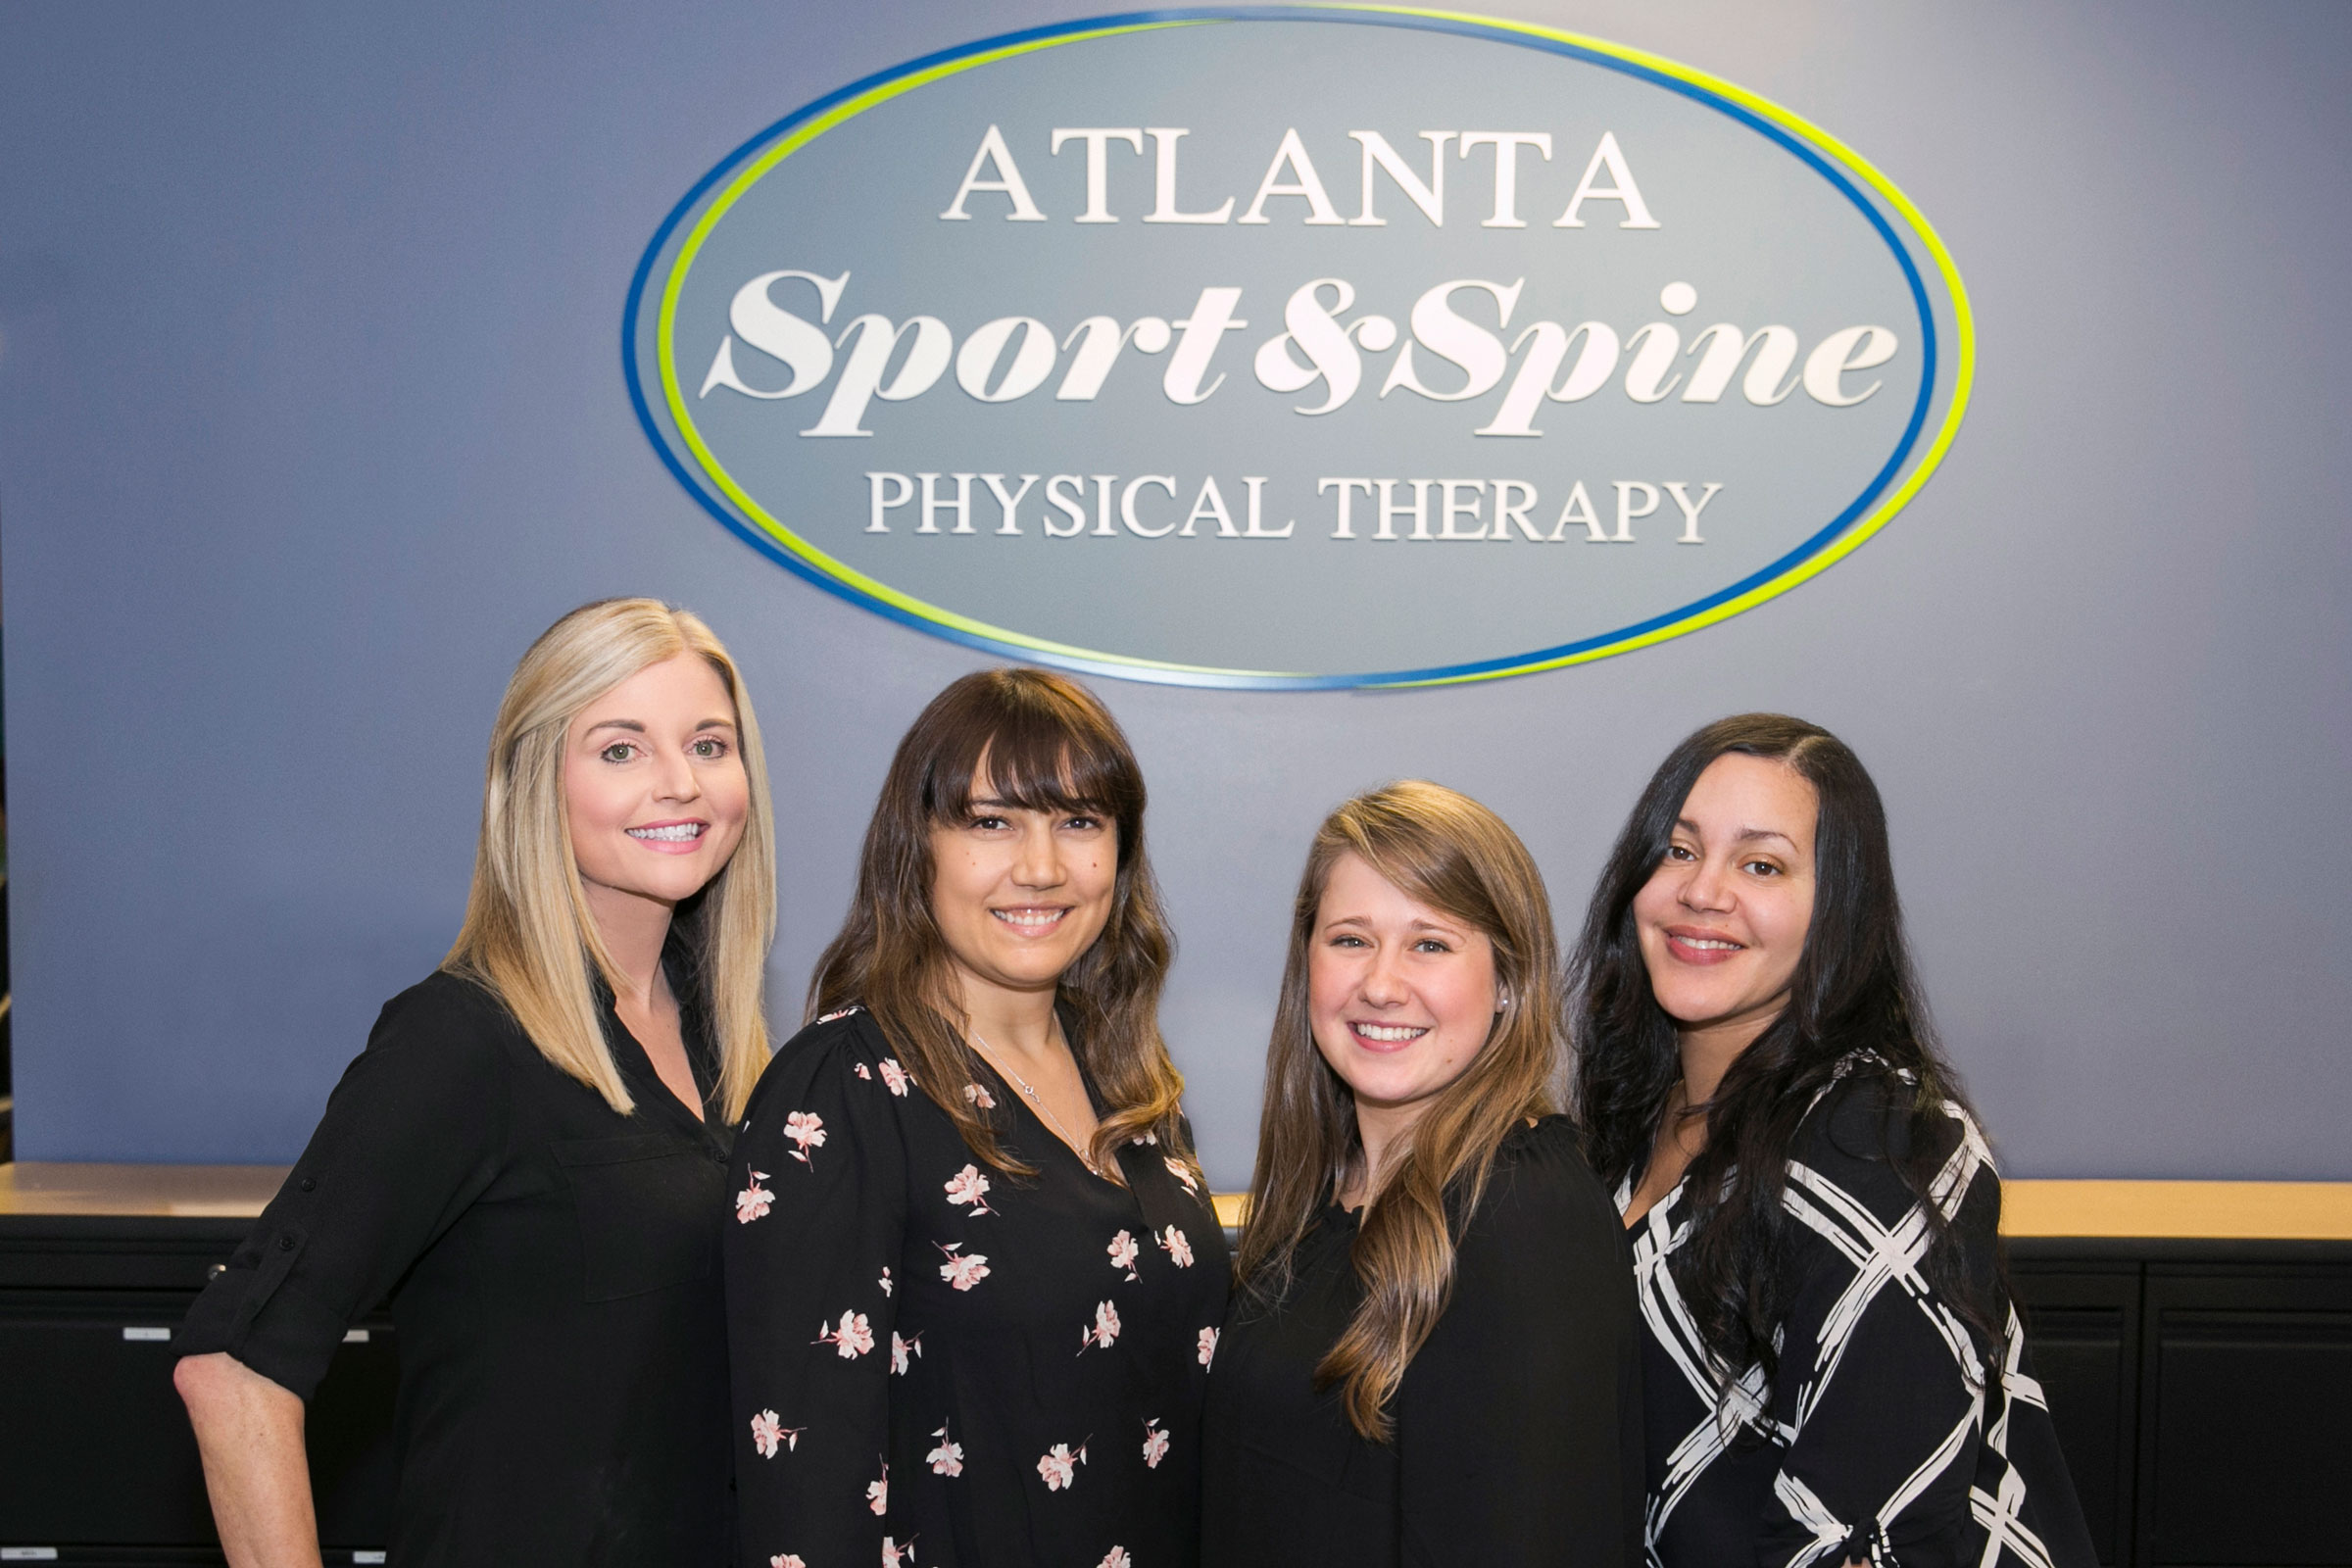 ATLANTA sport and spine physical therapy professional staff